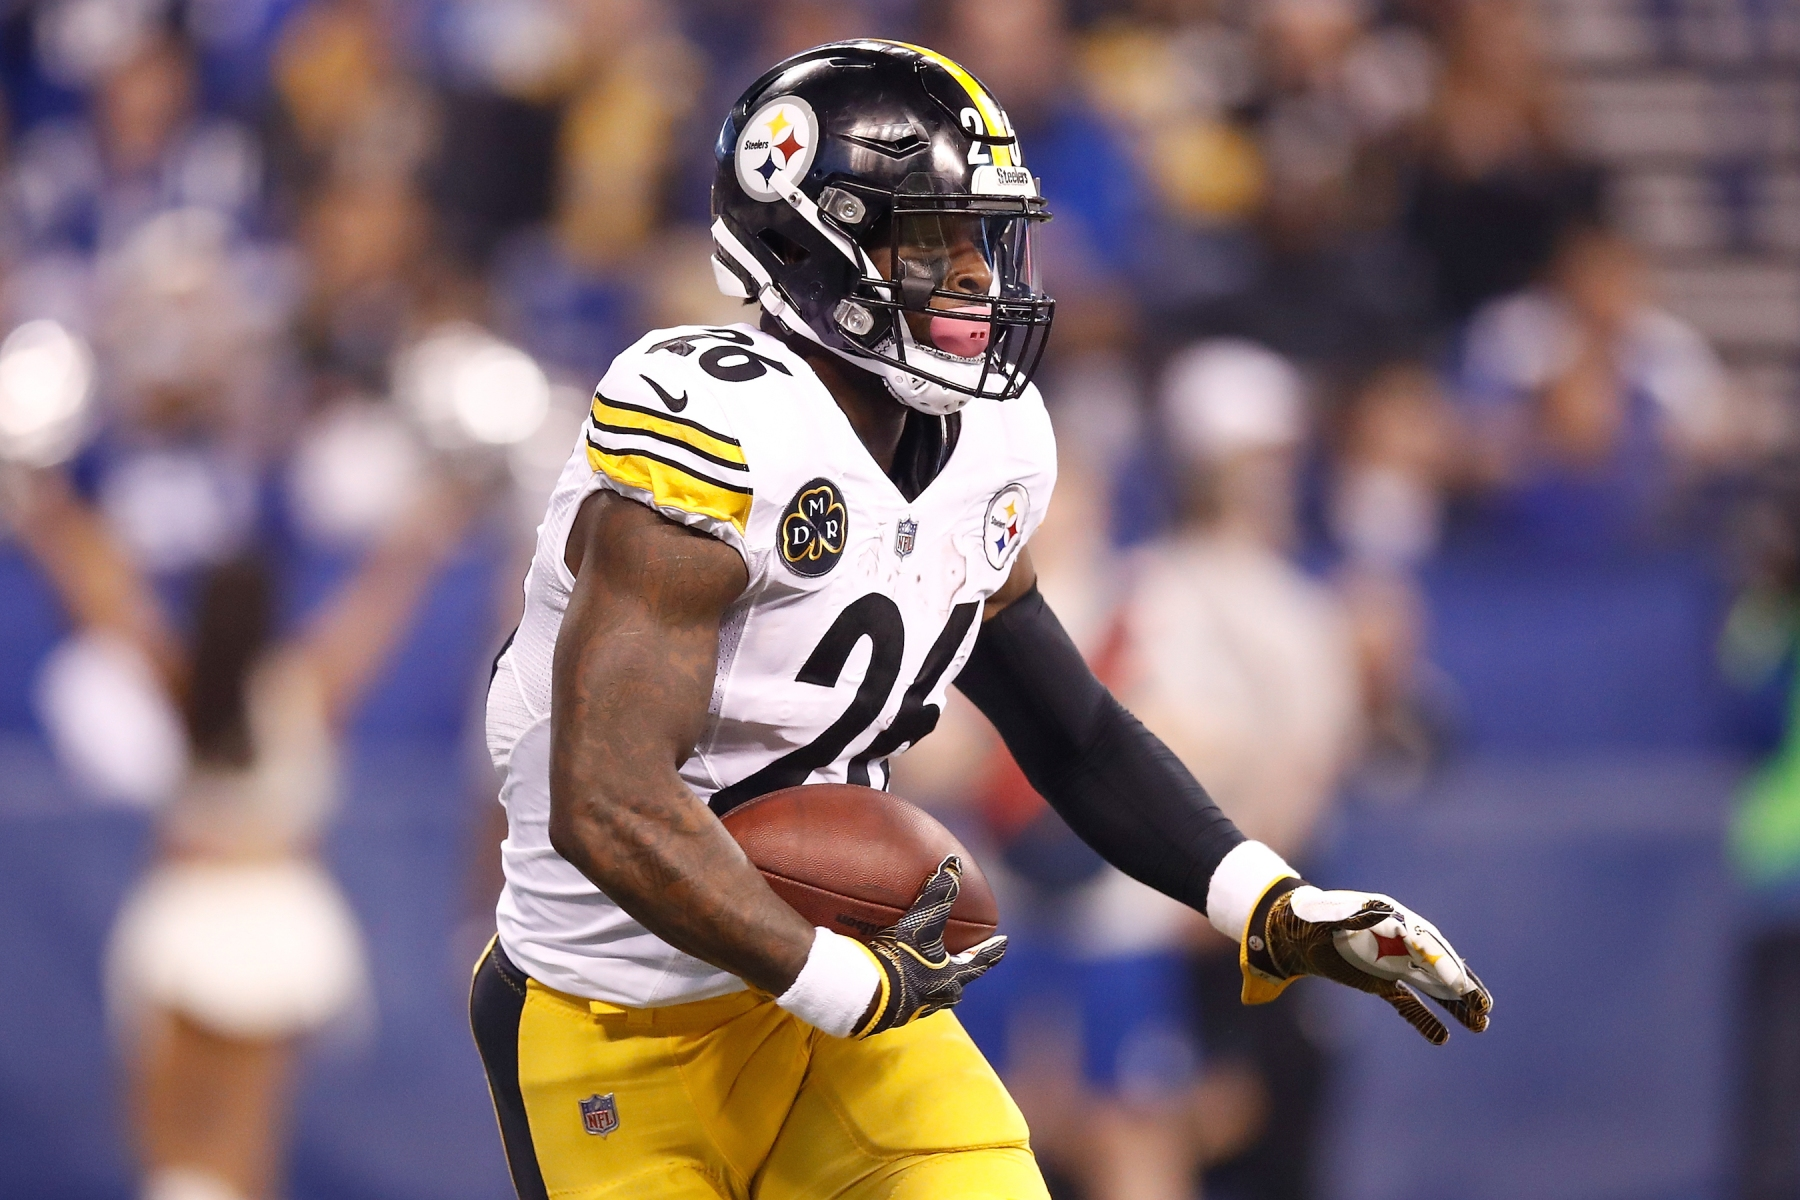 Le'Veon Bell #26 of the Pittsburgh Steelers runs with the bal against the Indianapolis Colts during the first quarter at Lucas Oil Stadium on November 12, 2017 in Indianapolis, Indiana.  (Photo by Andy Lyons/Getty Images)